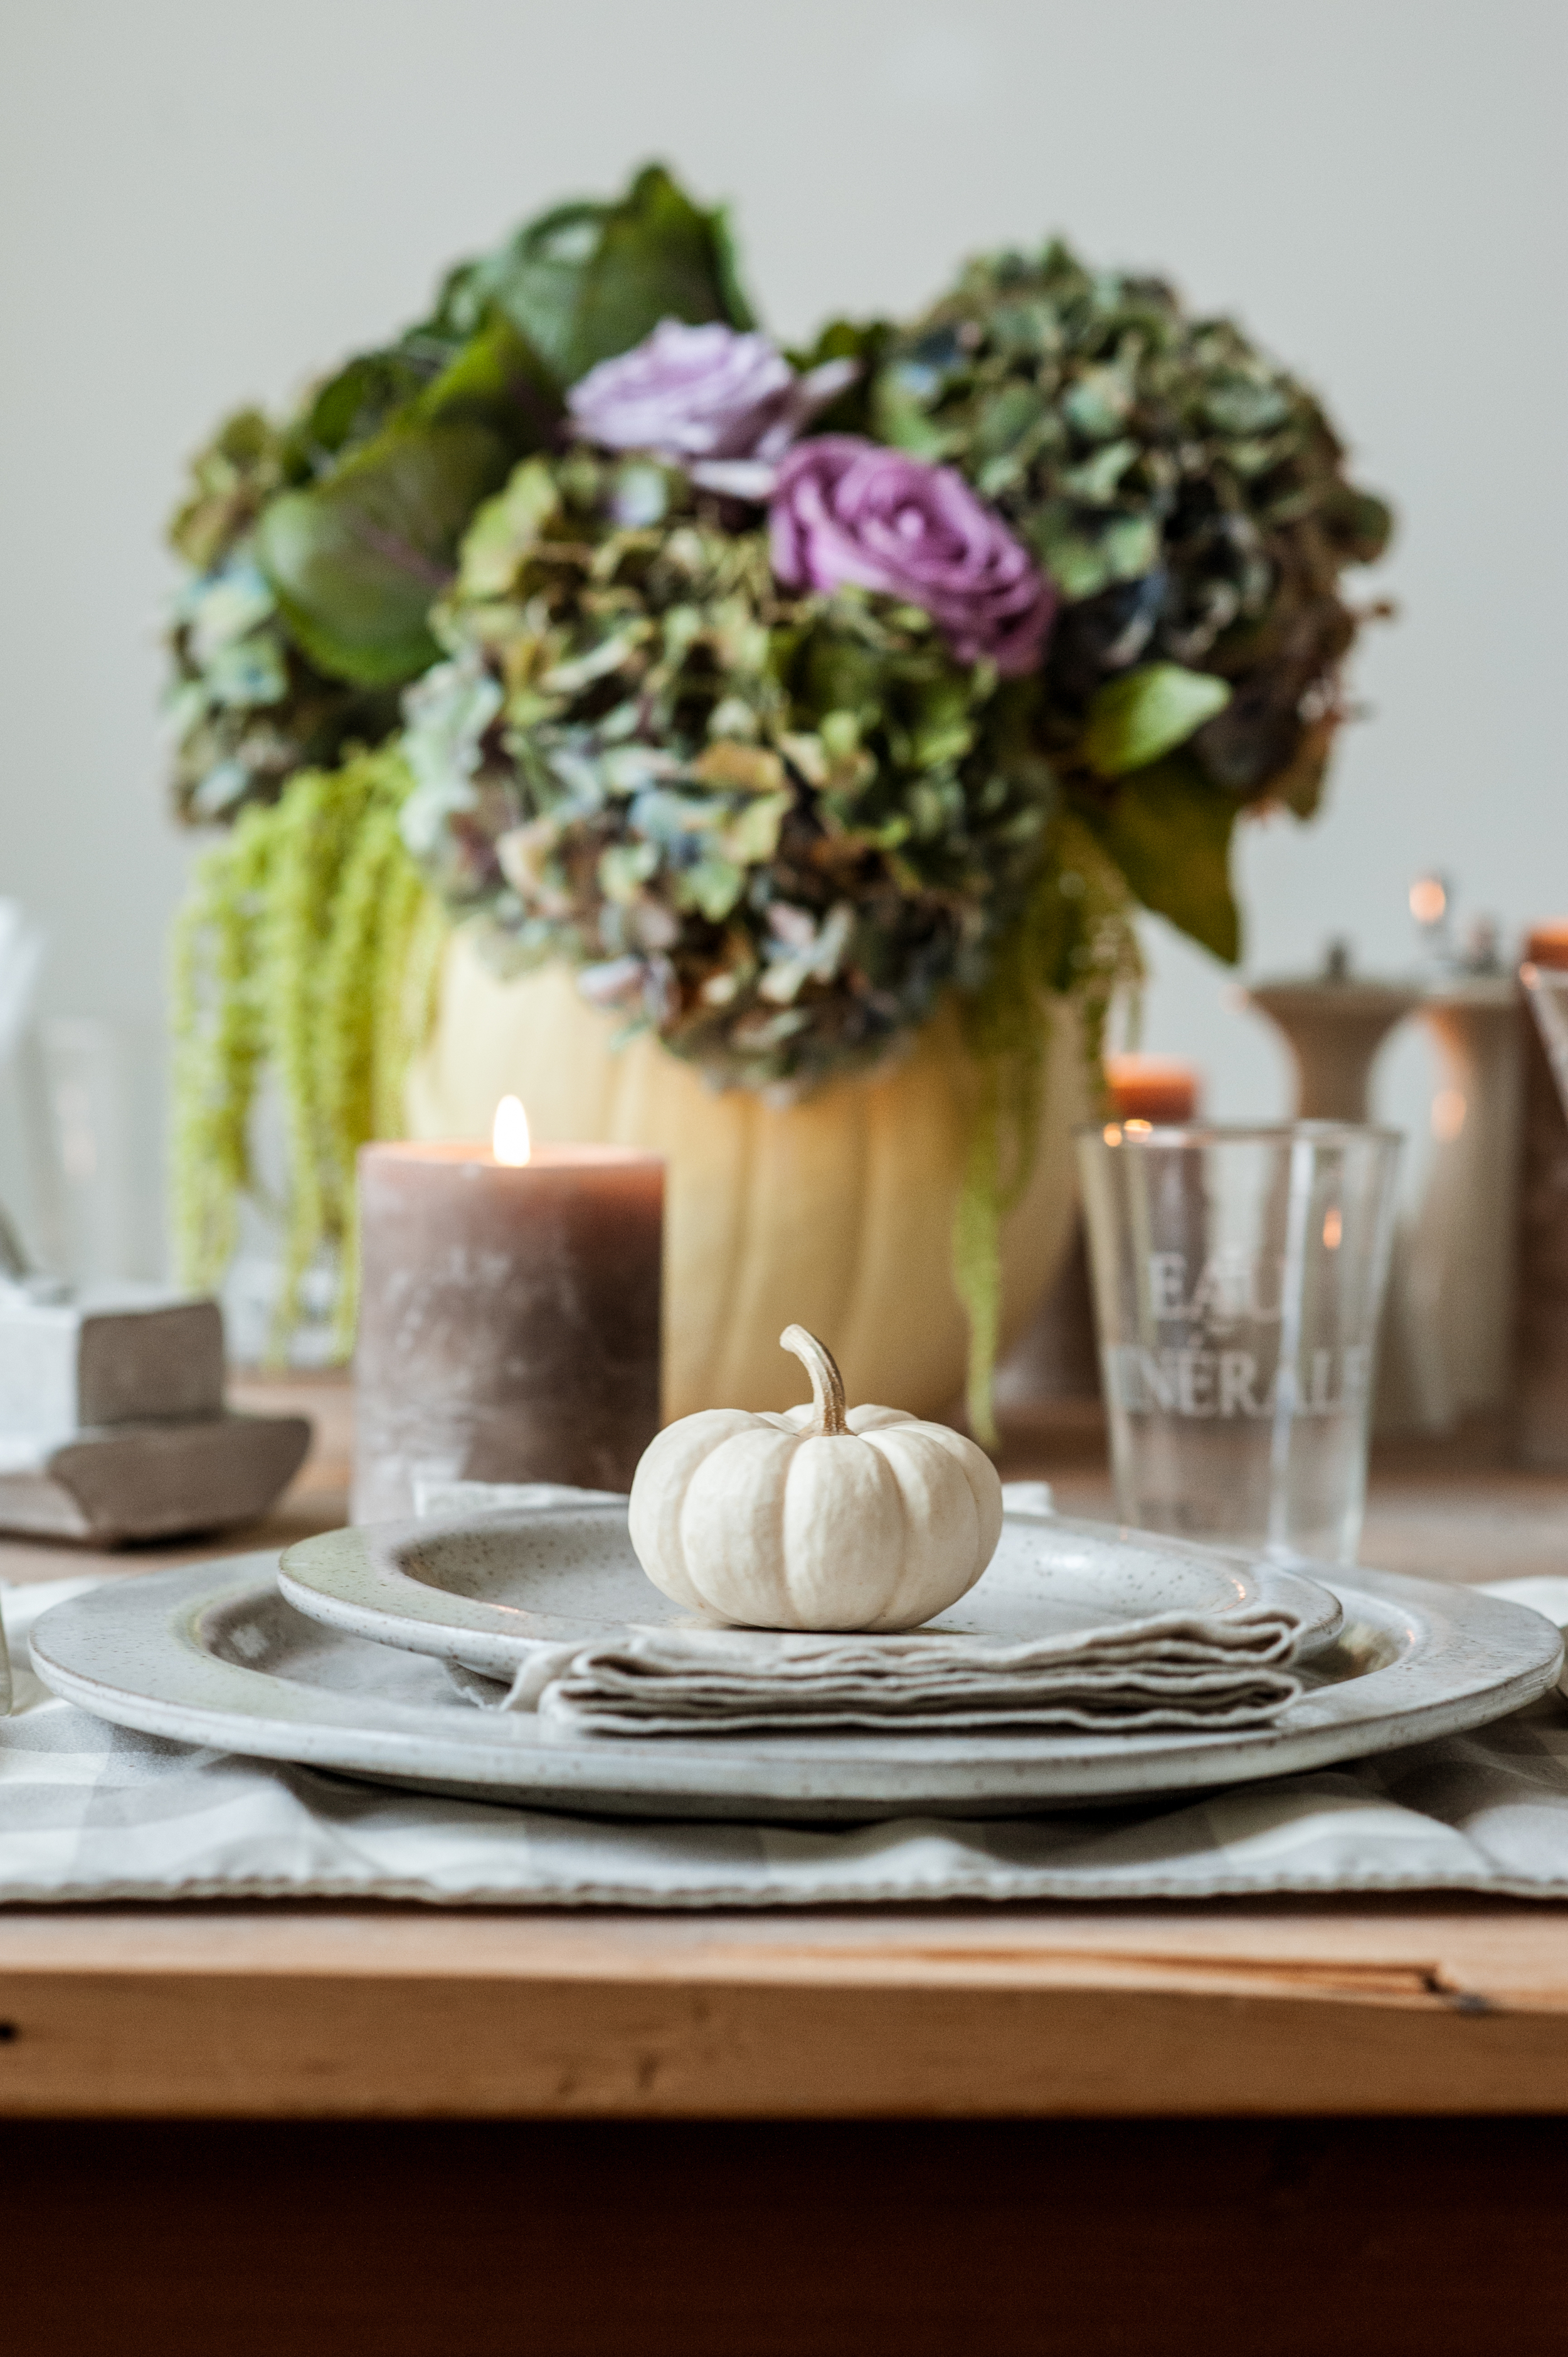 dishes_pumkin_and_candle_on_table_with_flowers